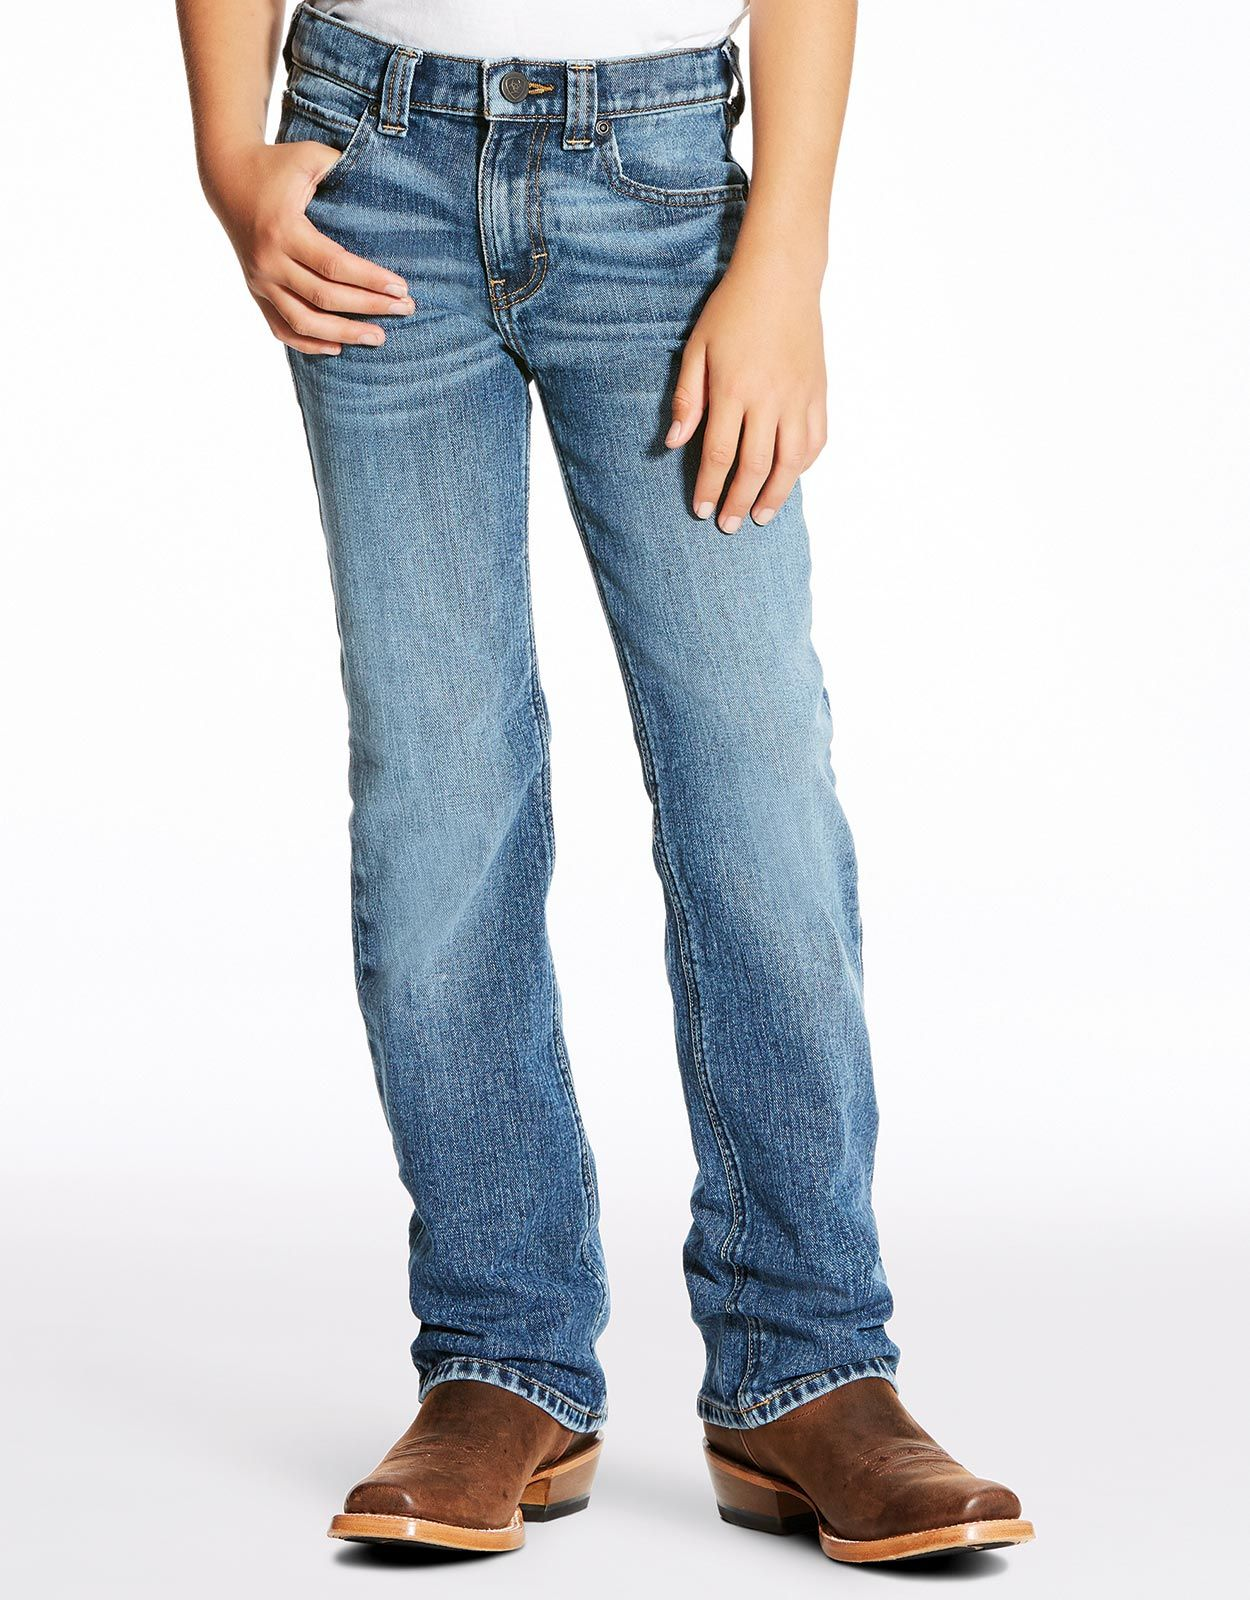 a1aa6058c2f ariat-boy-s-b4-stretch-low-rise-relaxed-fit-boot-cut-jeans -medium-vintage-7.jpg